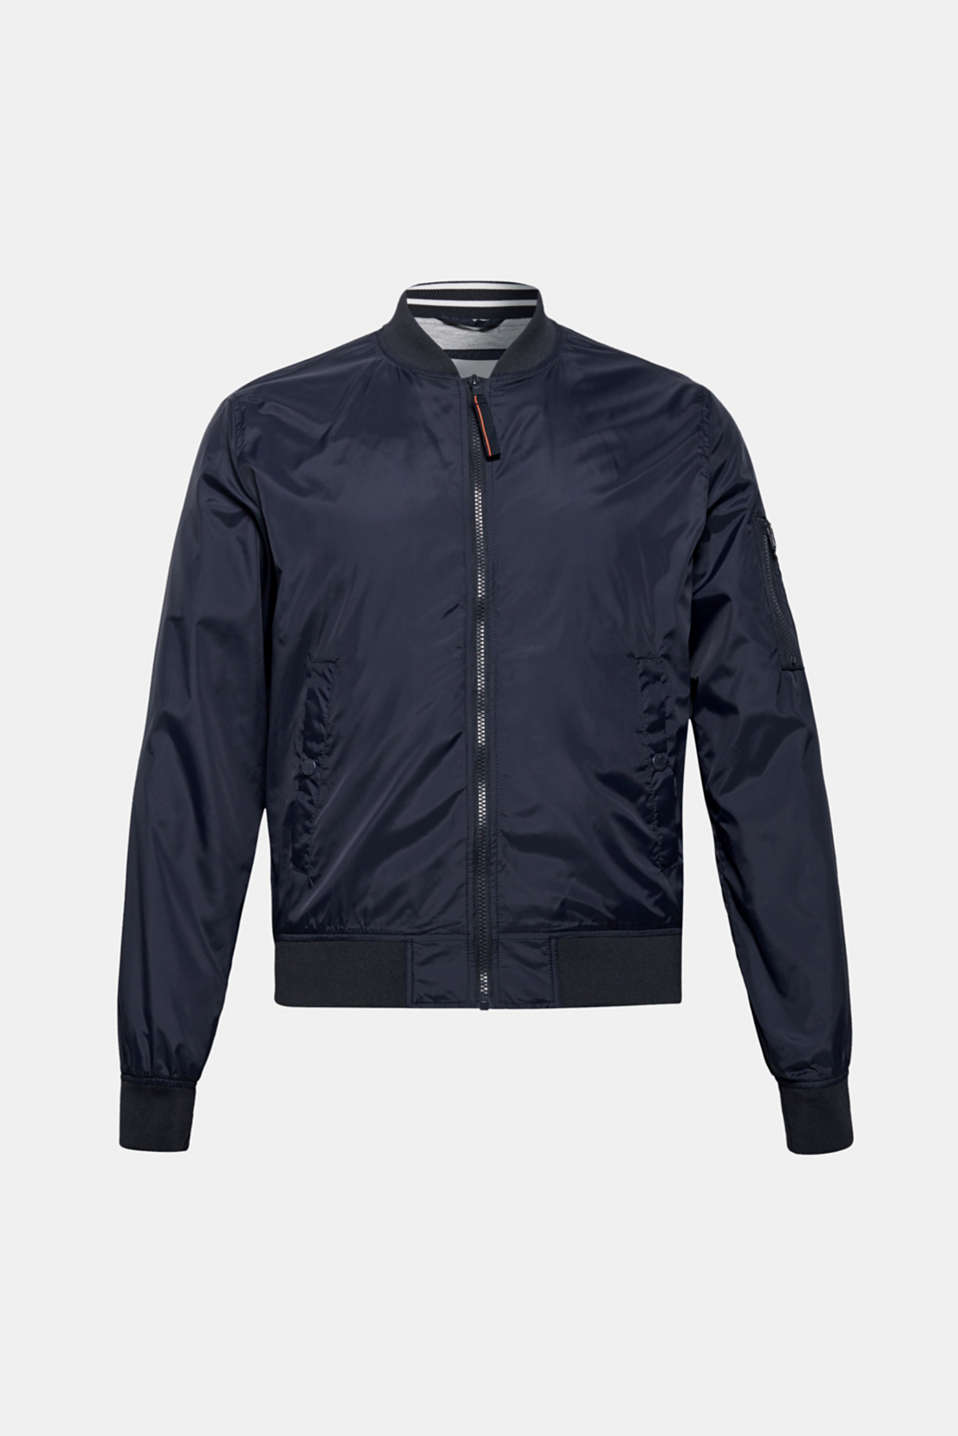 Jackets outdoor woven, DARK BLUE, detail image number 5